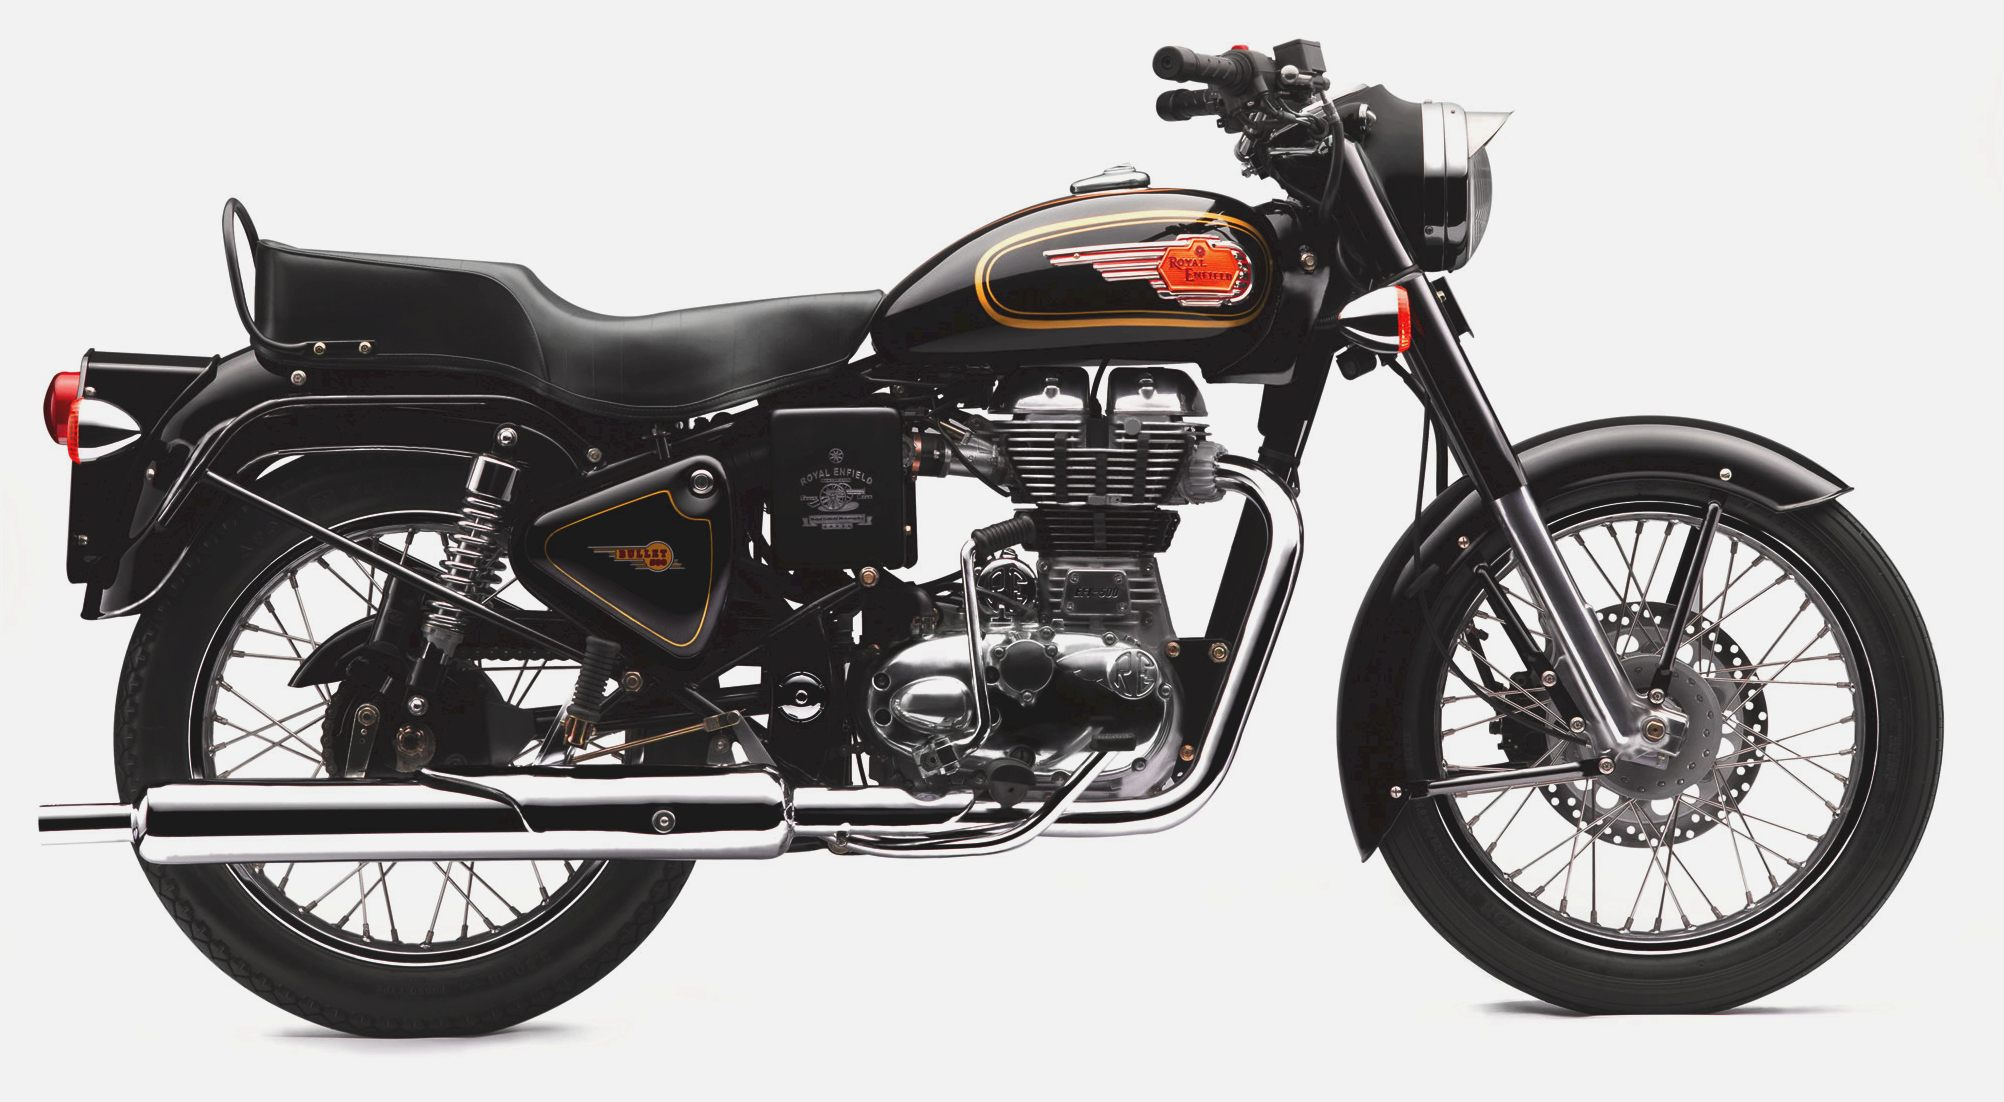 Royal Enfield Bullet 500 Classic 2011 images #123992